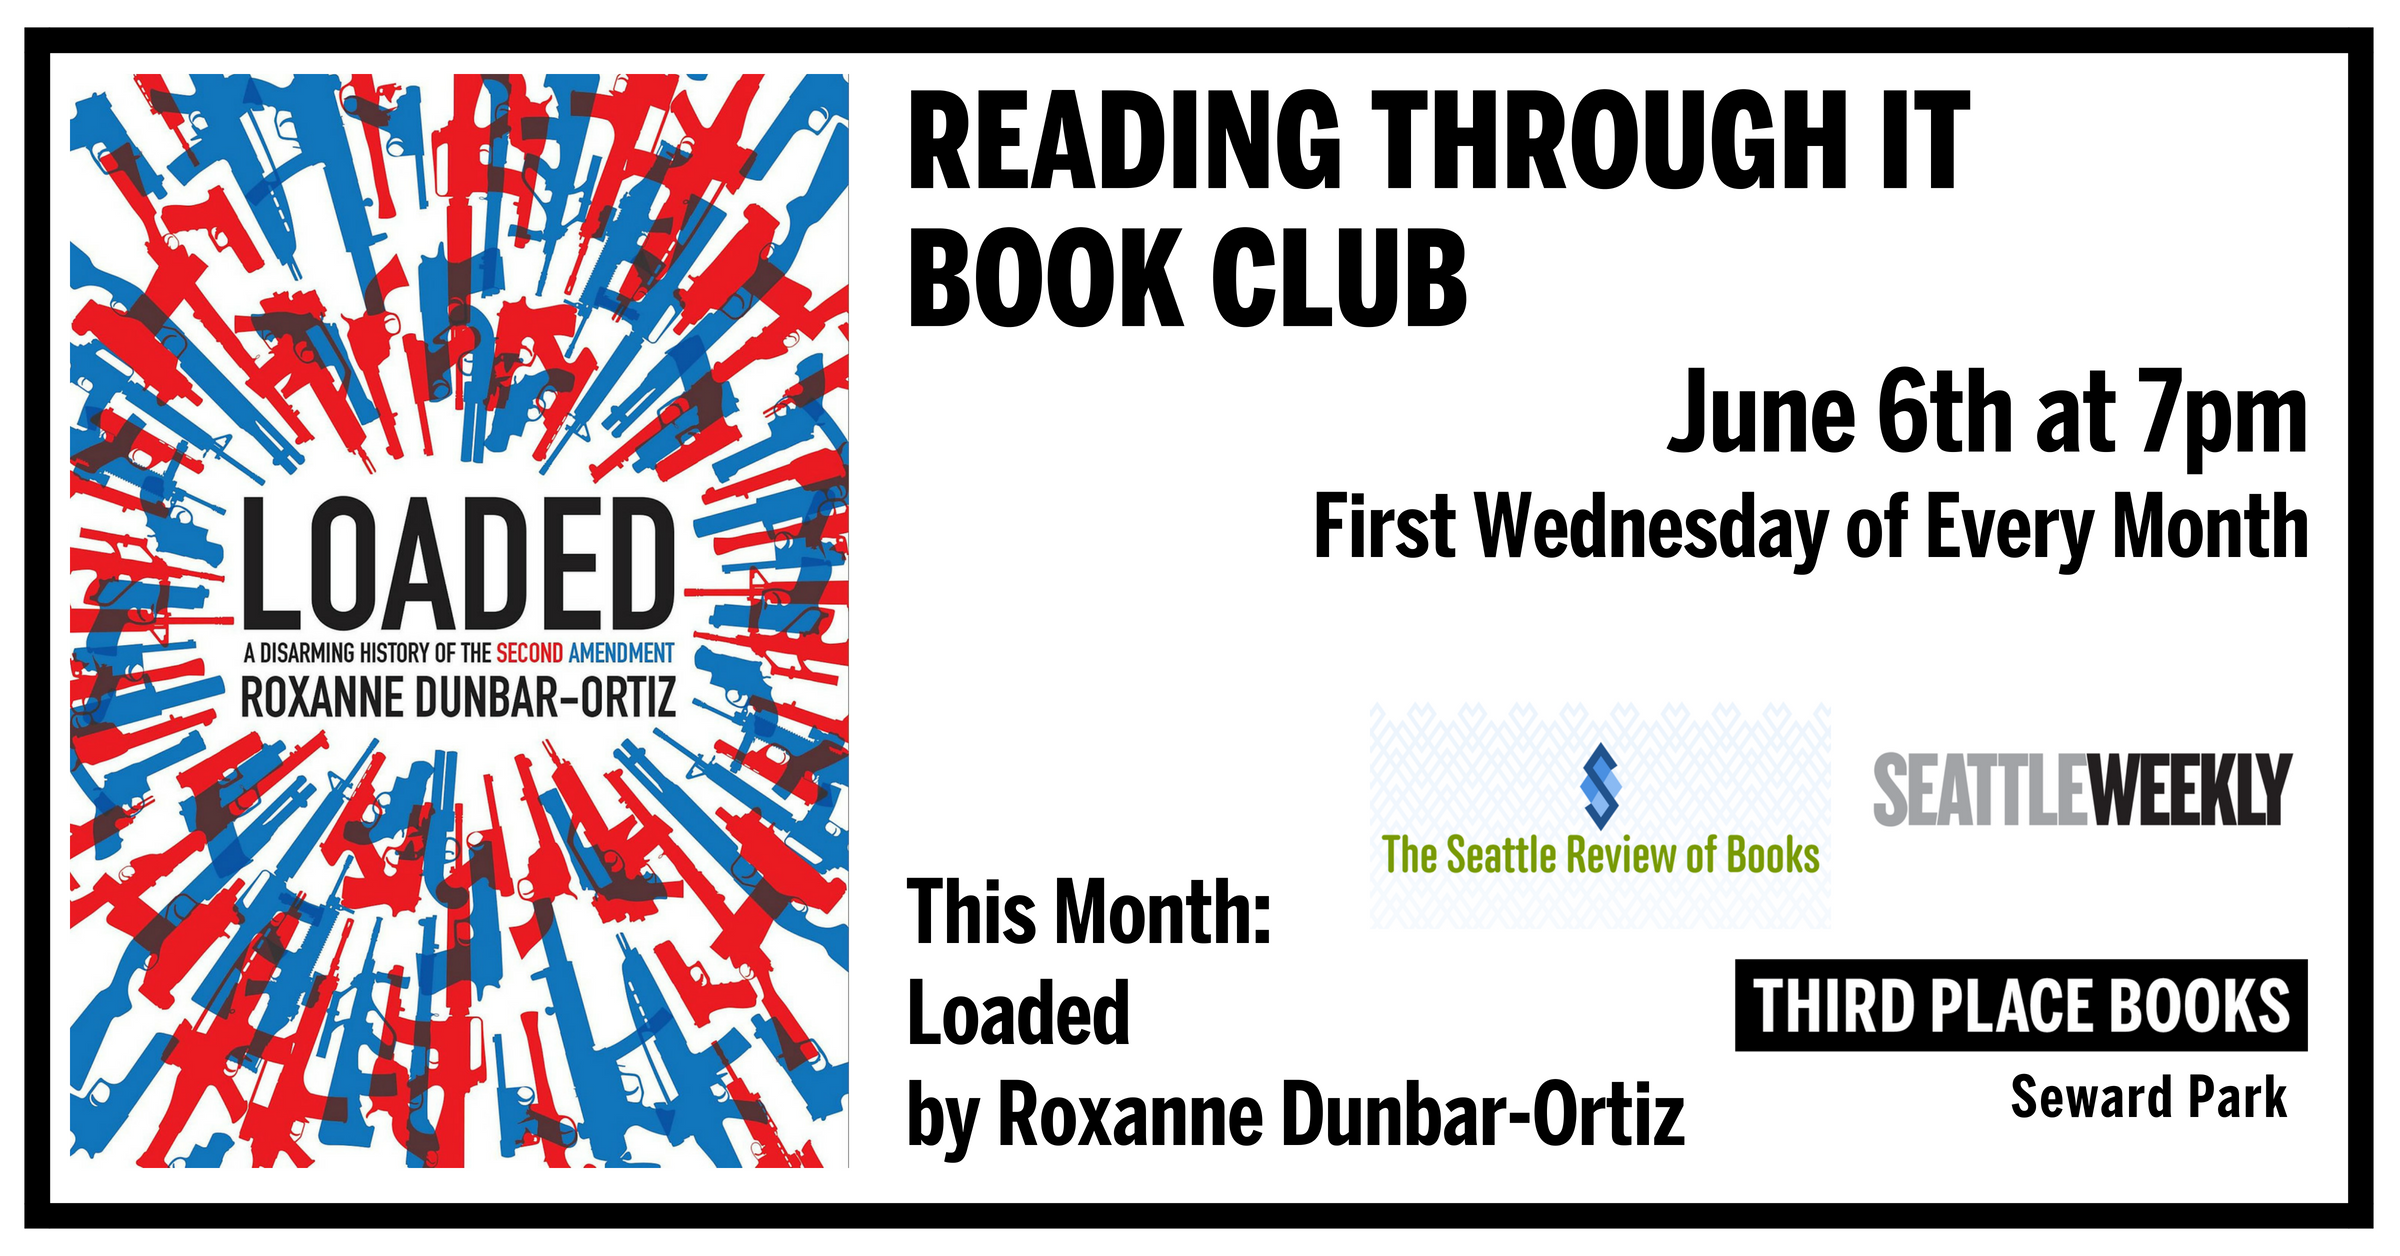 Reading Through It Book Club - Loaded on Wednesday, June 6th at 7pm